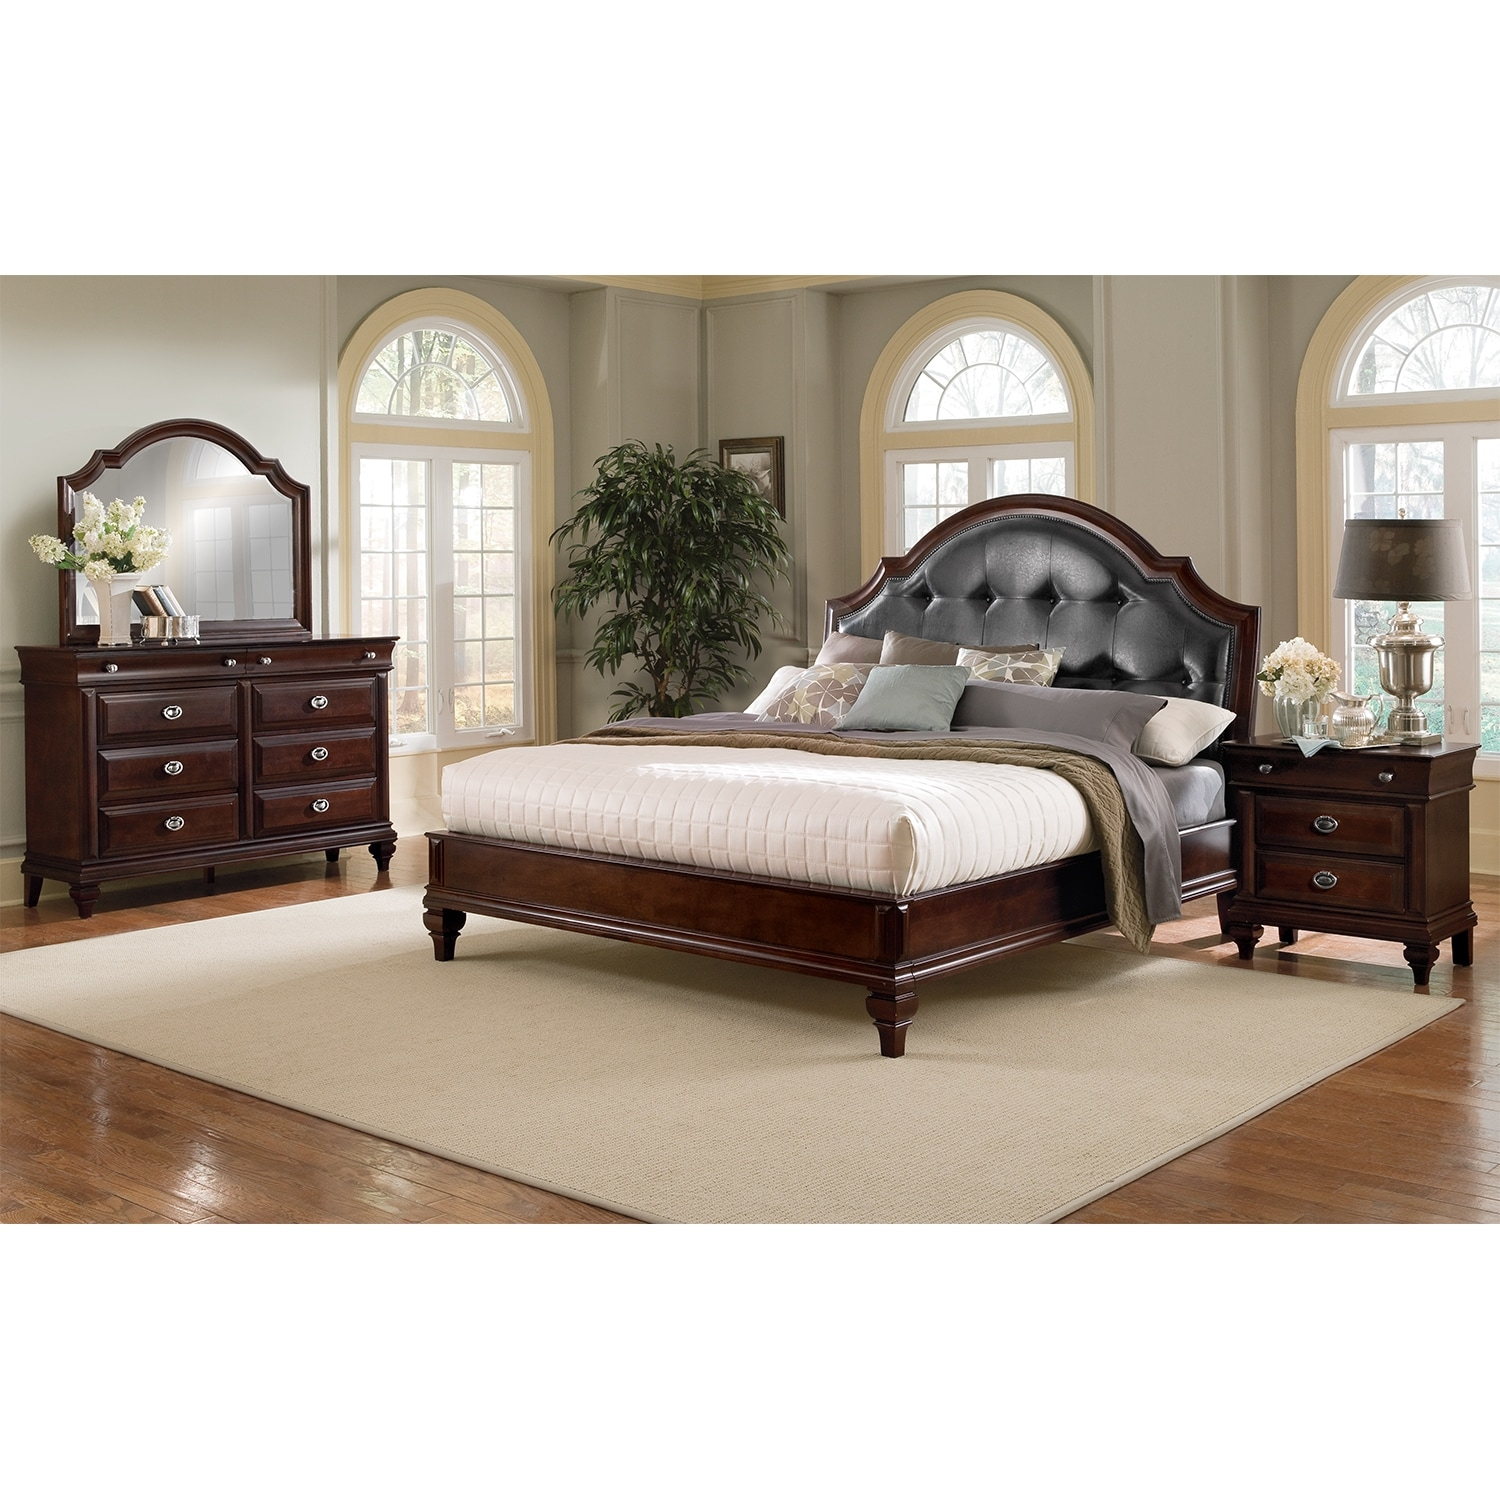 Perfect Bedroom Furniture   Manhattan 6 Piece King Upholstered Bedroom Set   Cherry